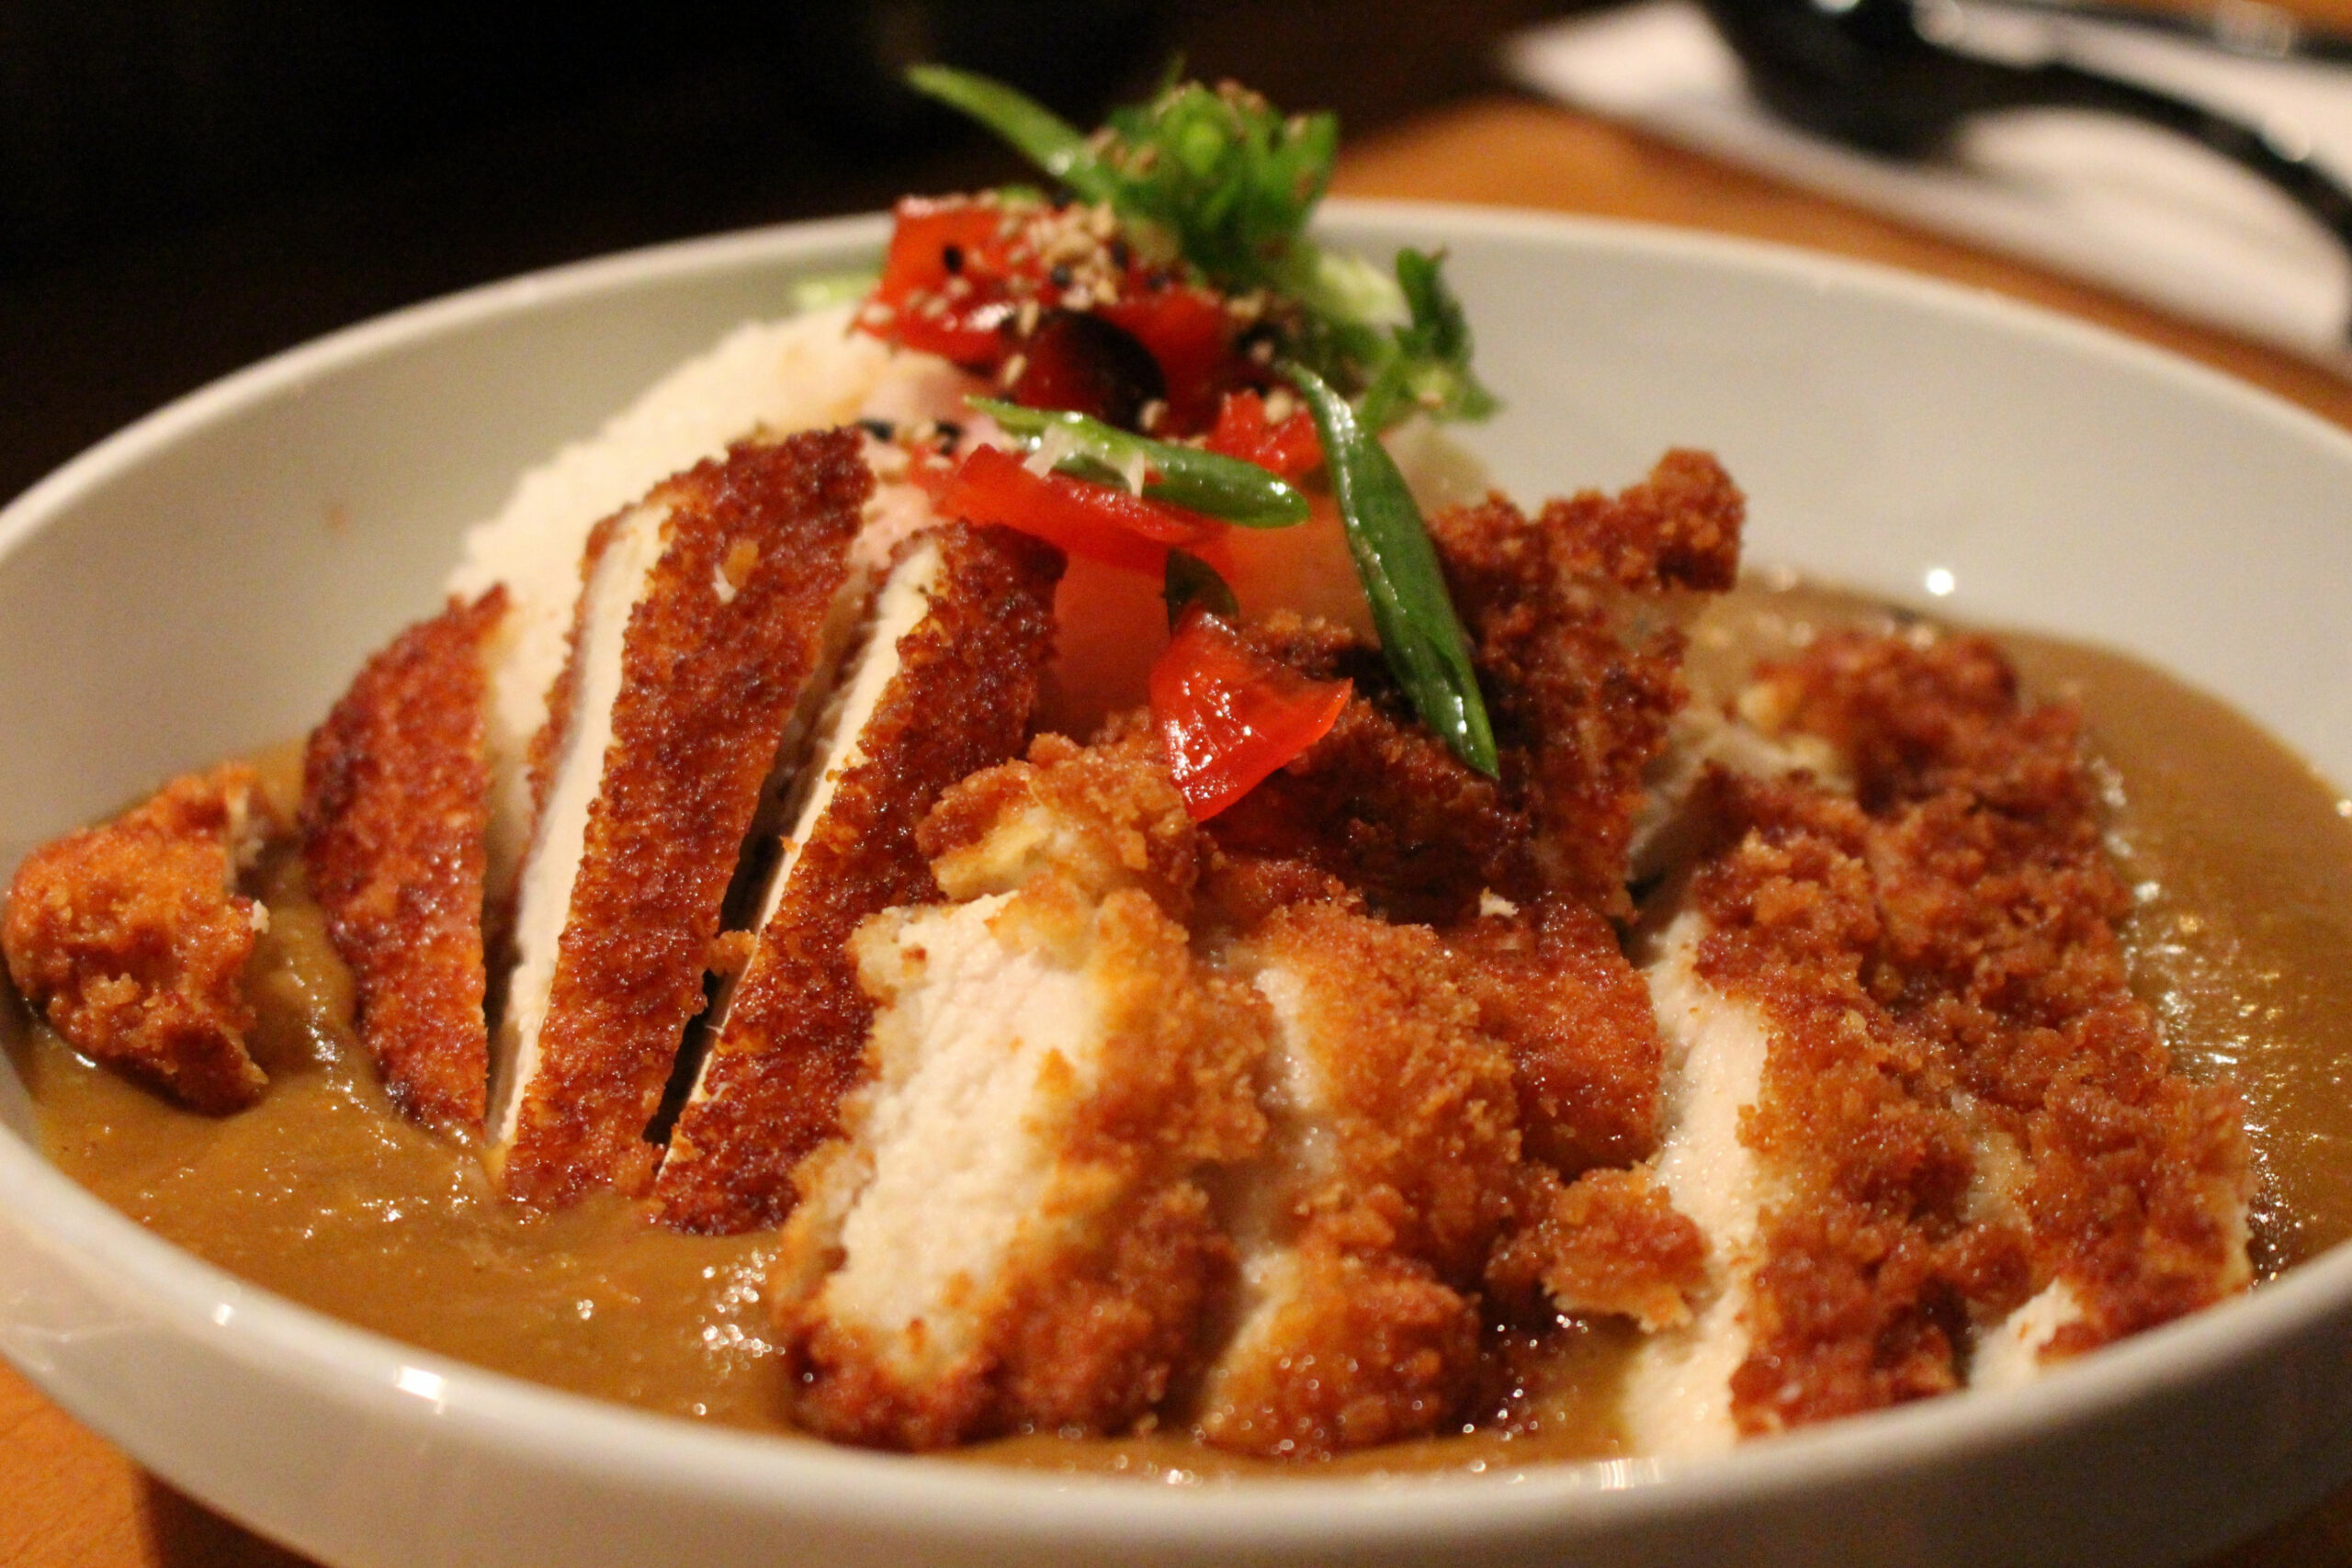 chicken katsu near me - chicken recipes near me